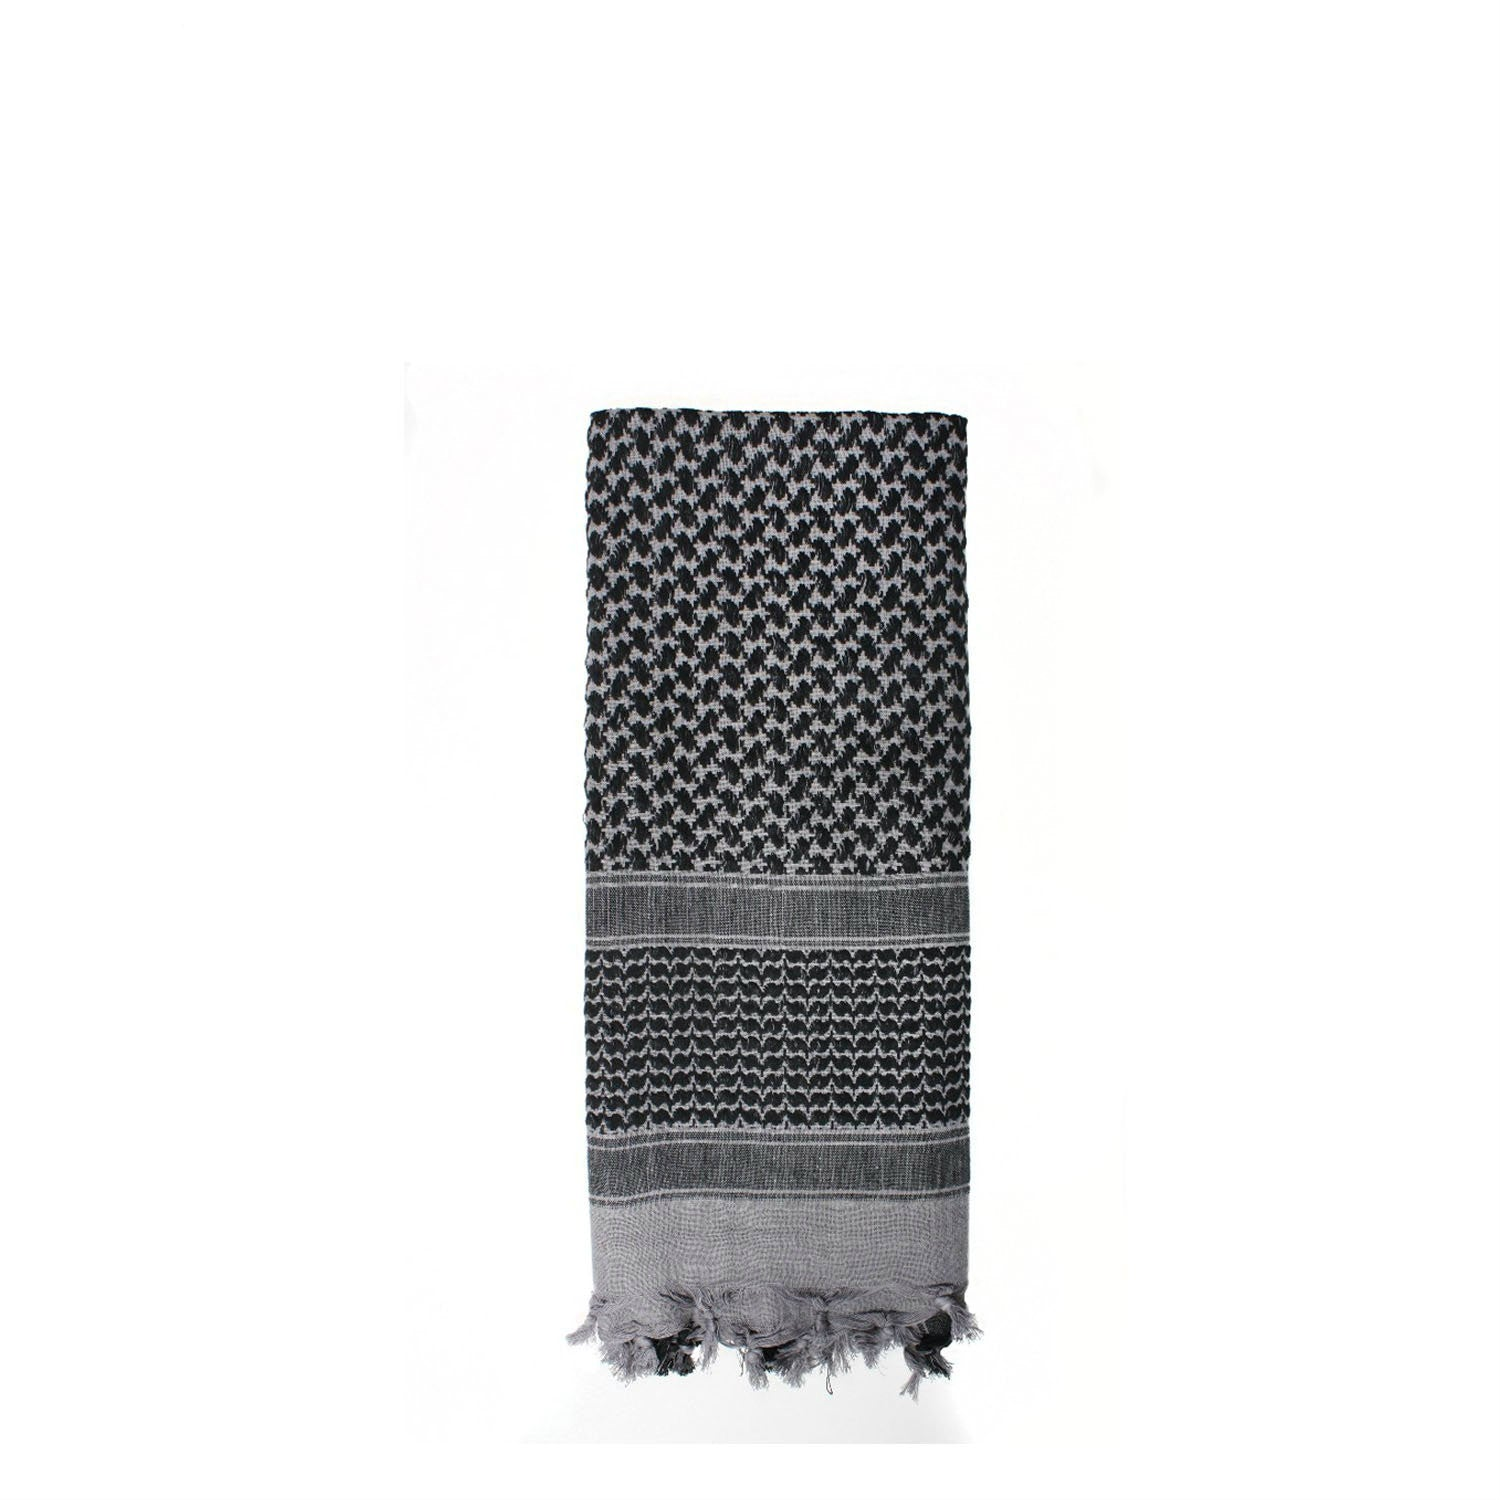 Shemagh Tactical Desert Scarf Grey / Black